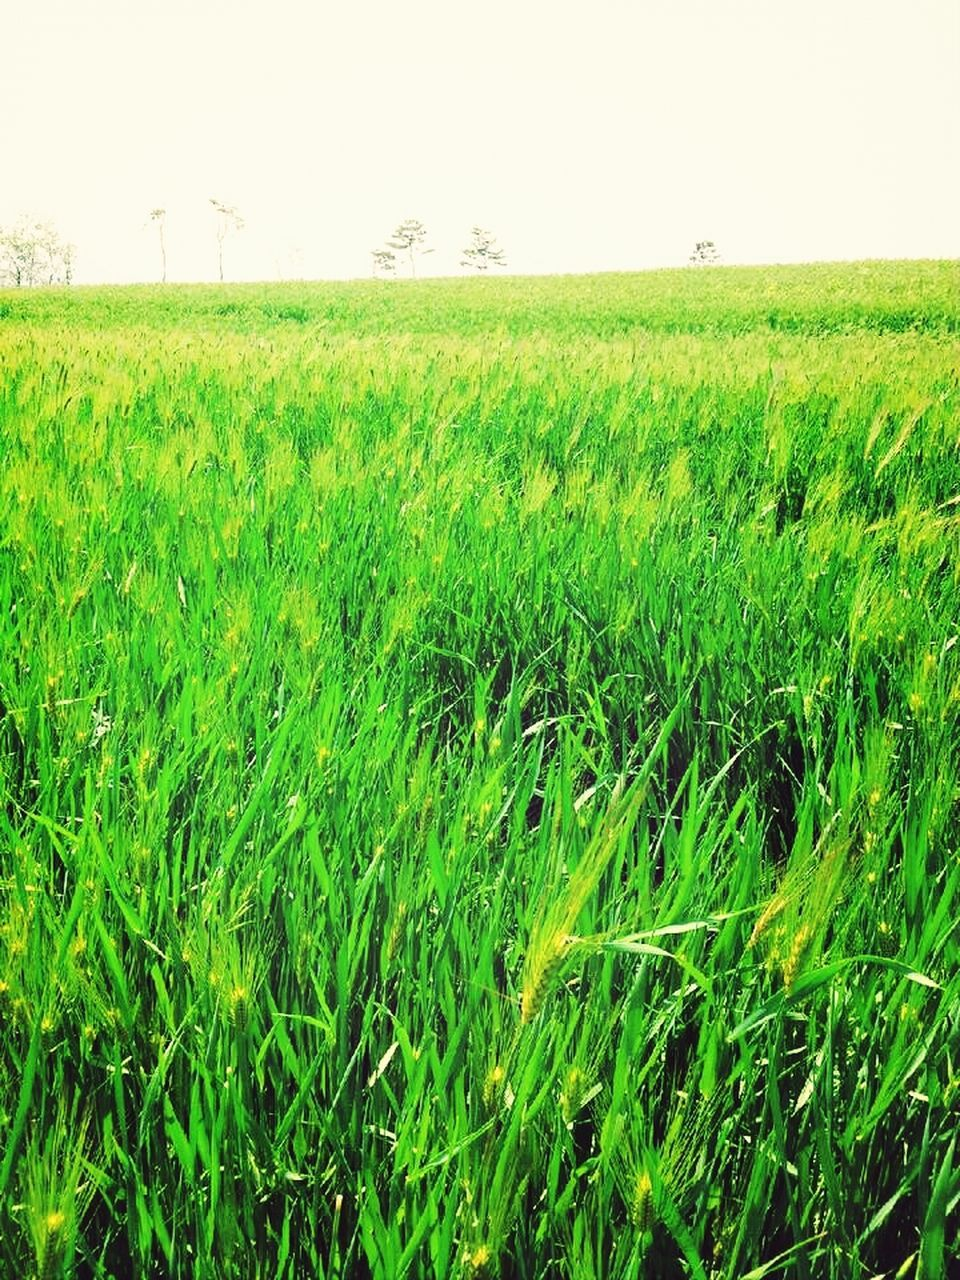 agriculture, field, nature, farm, growth, landscape, crop, rural scene, clear sky, beauty in nature, grass, no people, tranquility, green color, outdoors, day, scenics, wheat, cereal plant, freshness, sky